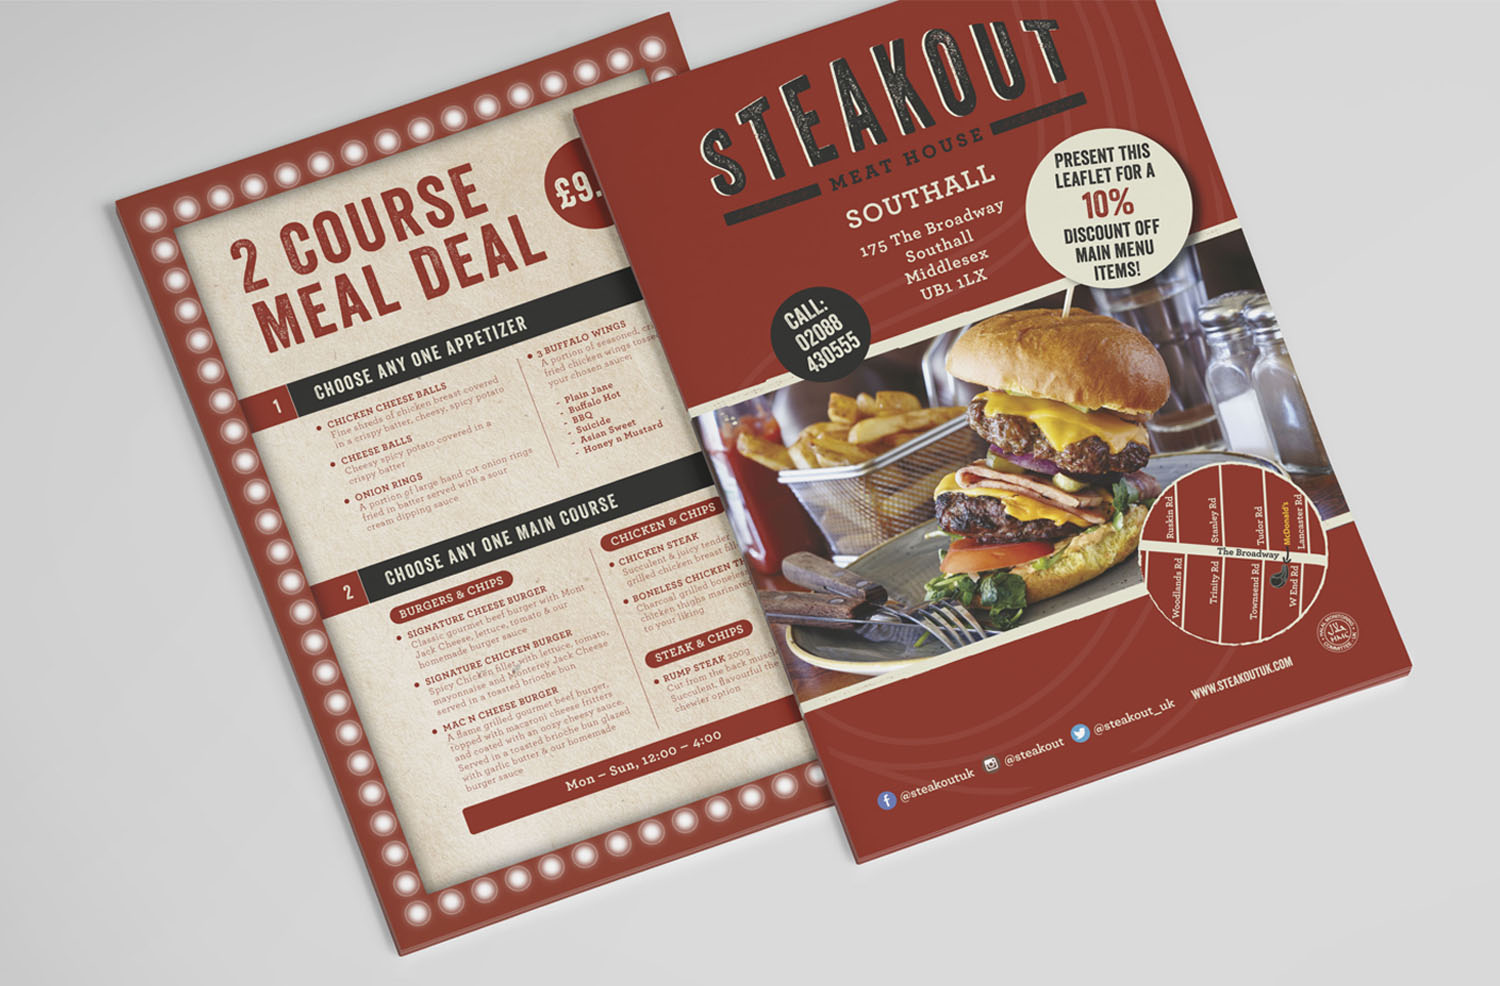 steakout-southall-a5-meal-deal-flyer-design.jpg